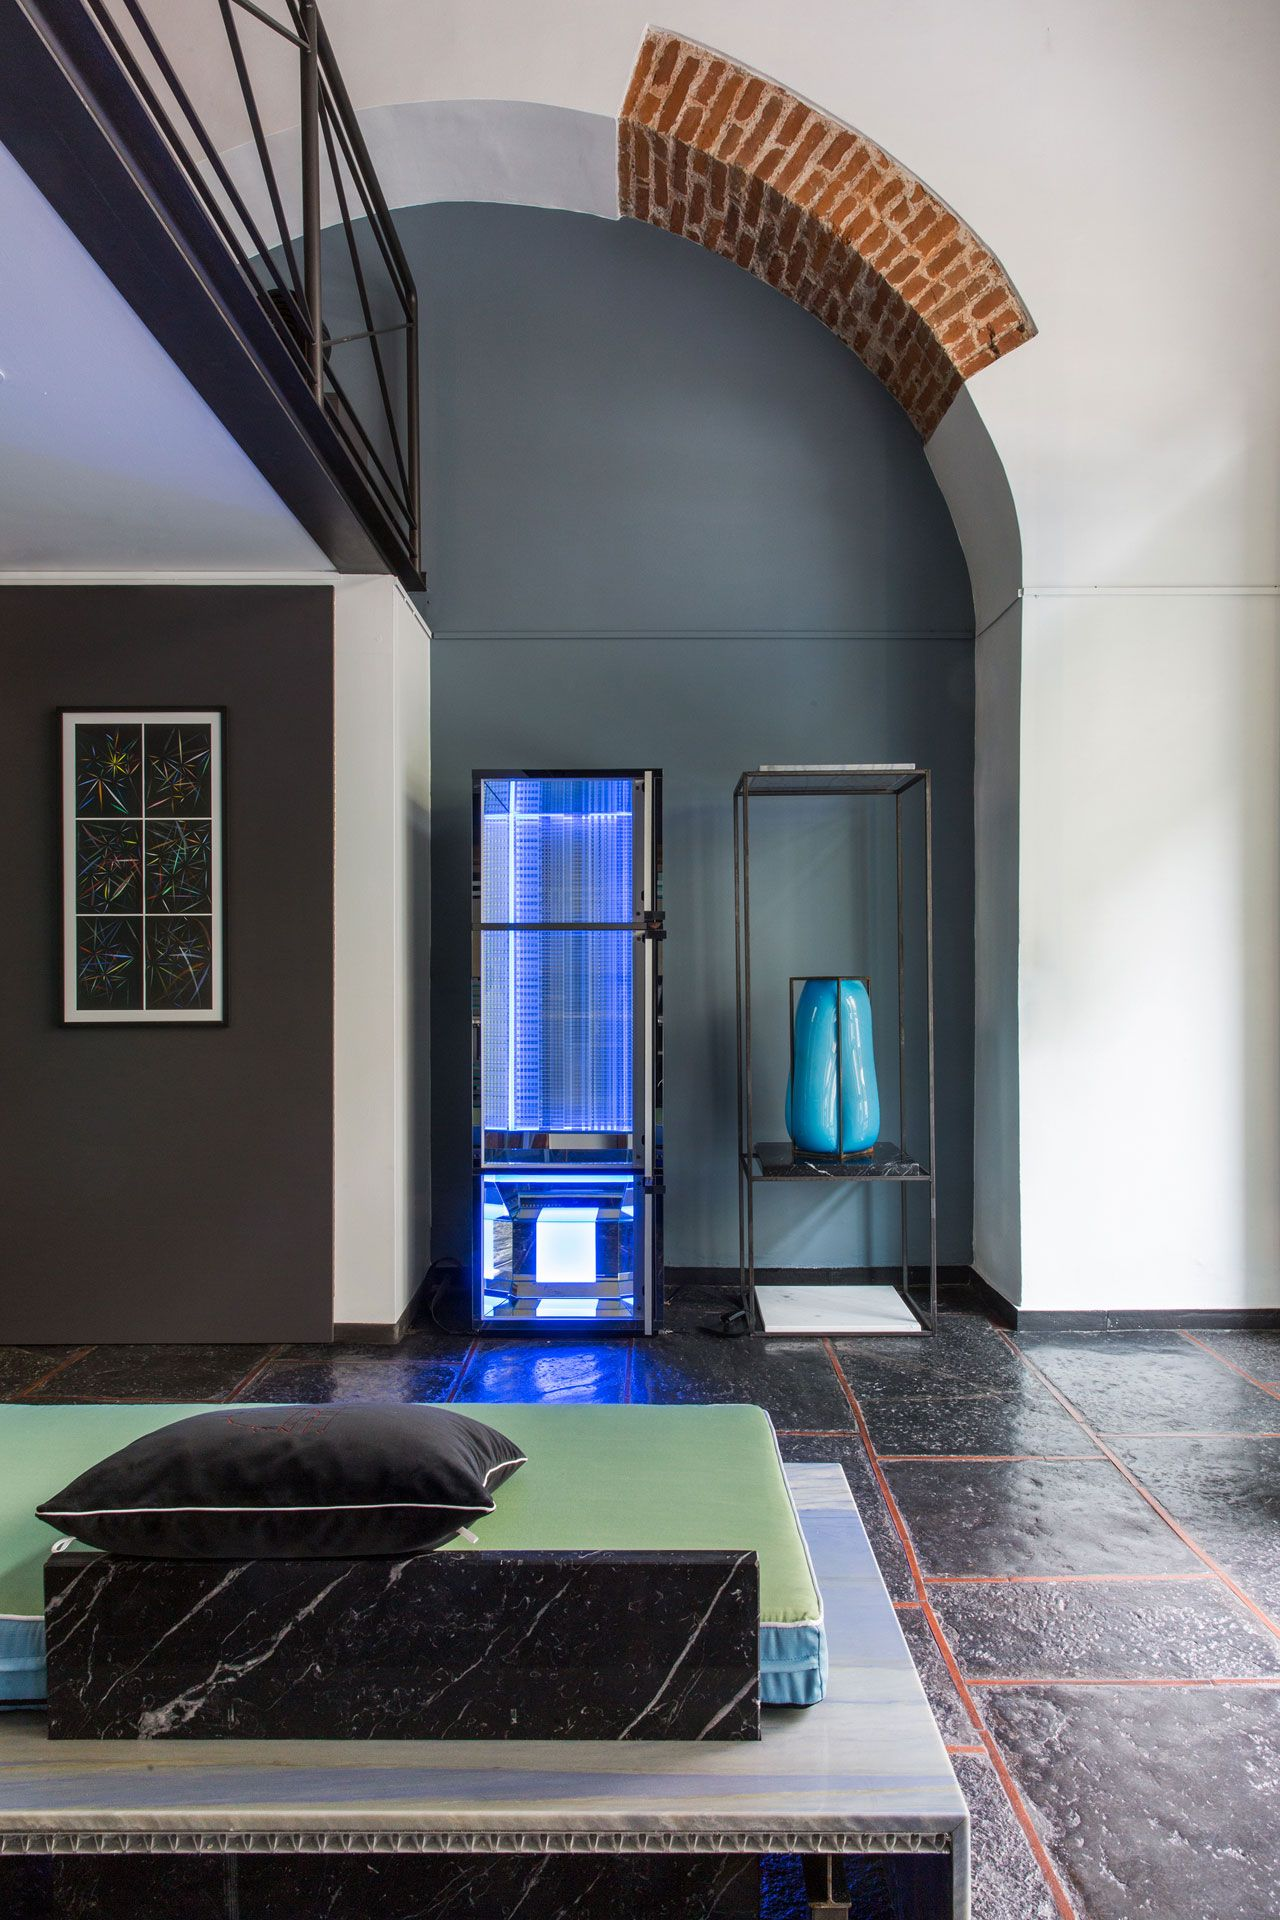 Artist riccardo beretta and architect designer marco parmeggiani joined forces for  group show at luca preti design storico on via san also best of milan week architecture  interior rh pinterest